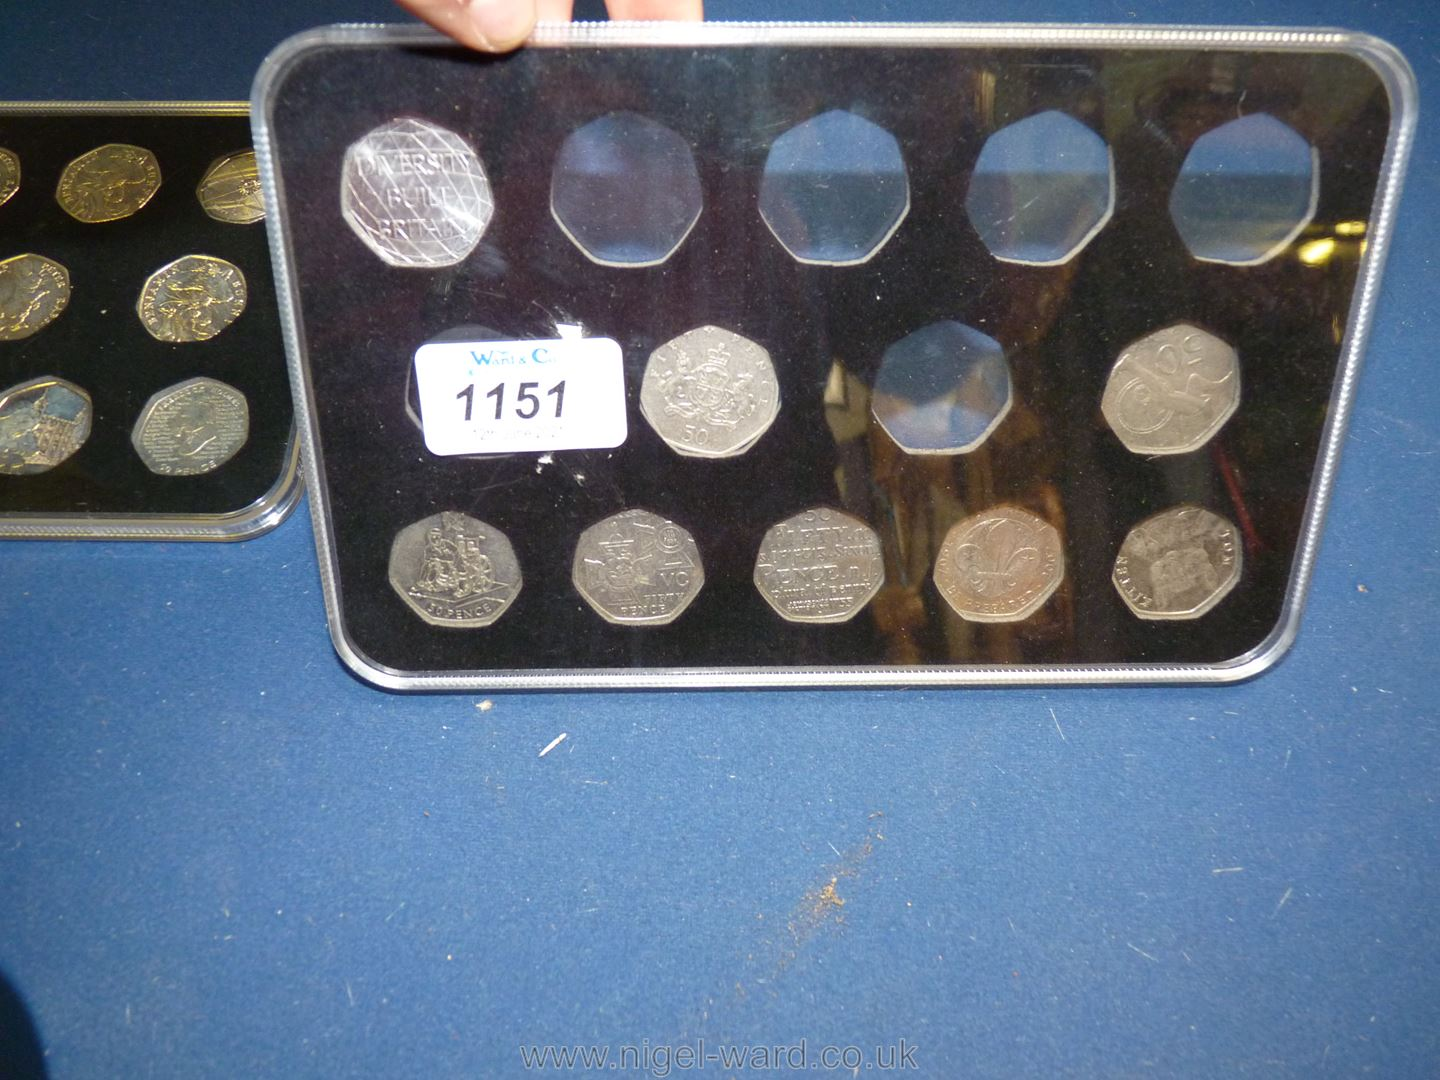 One full and one part case of 50 pence pieces including Olympics Peter Rabbit, Paddington Bear, - Image 3 of 3